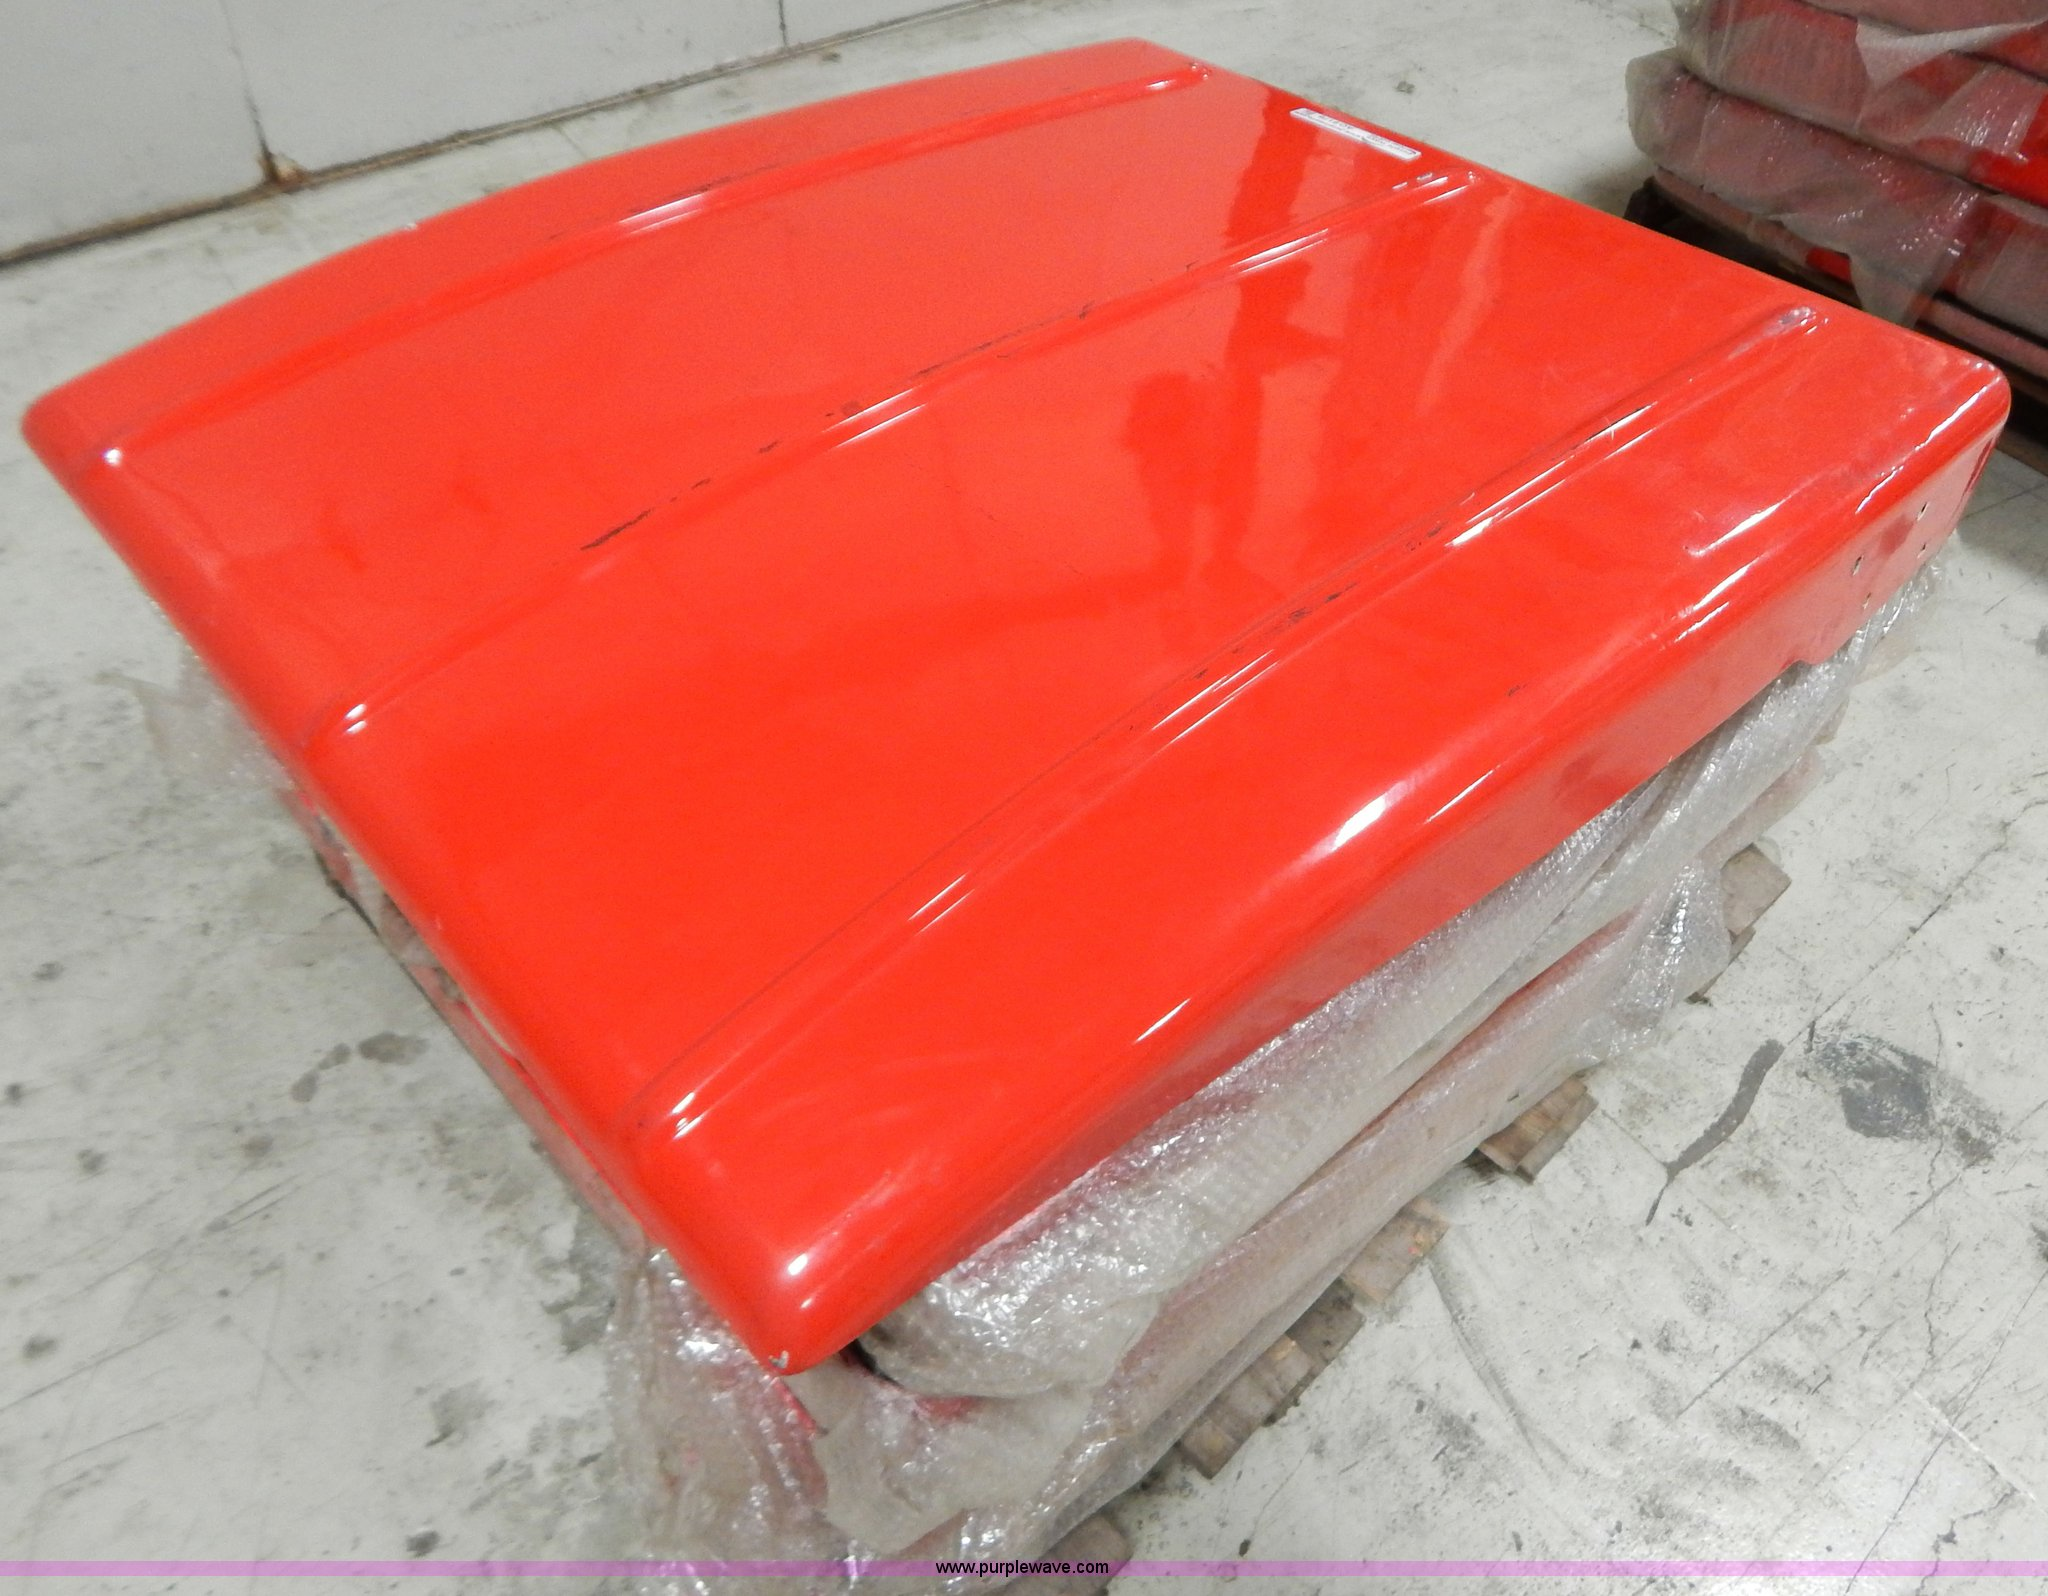 AO9180 image for item AO9180 (6) universal tractor canopy tops & 6) universal tractor canopy tops | Item AO9180 | SOLD! Janu...